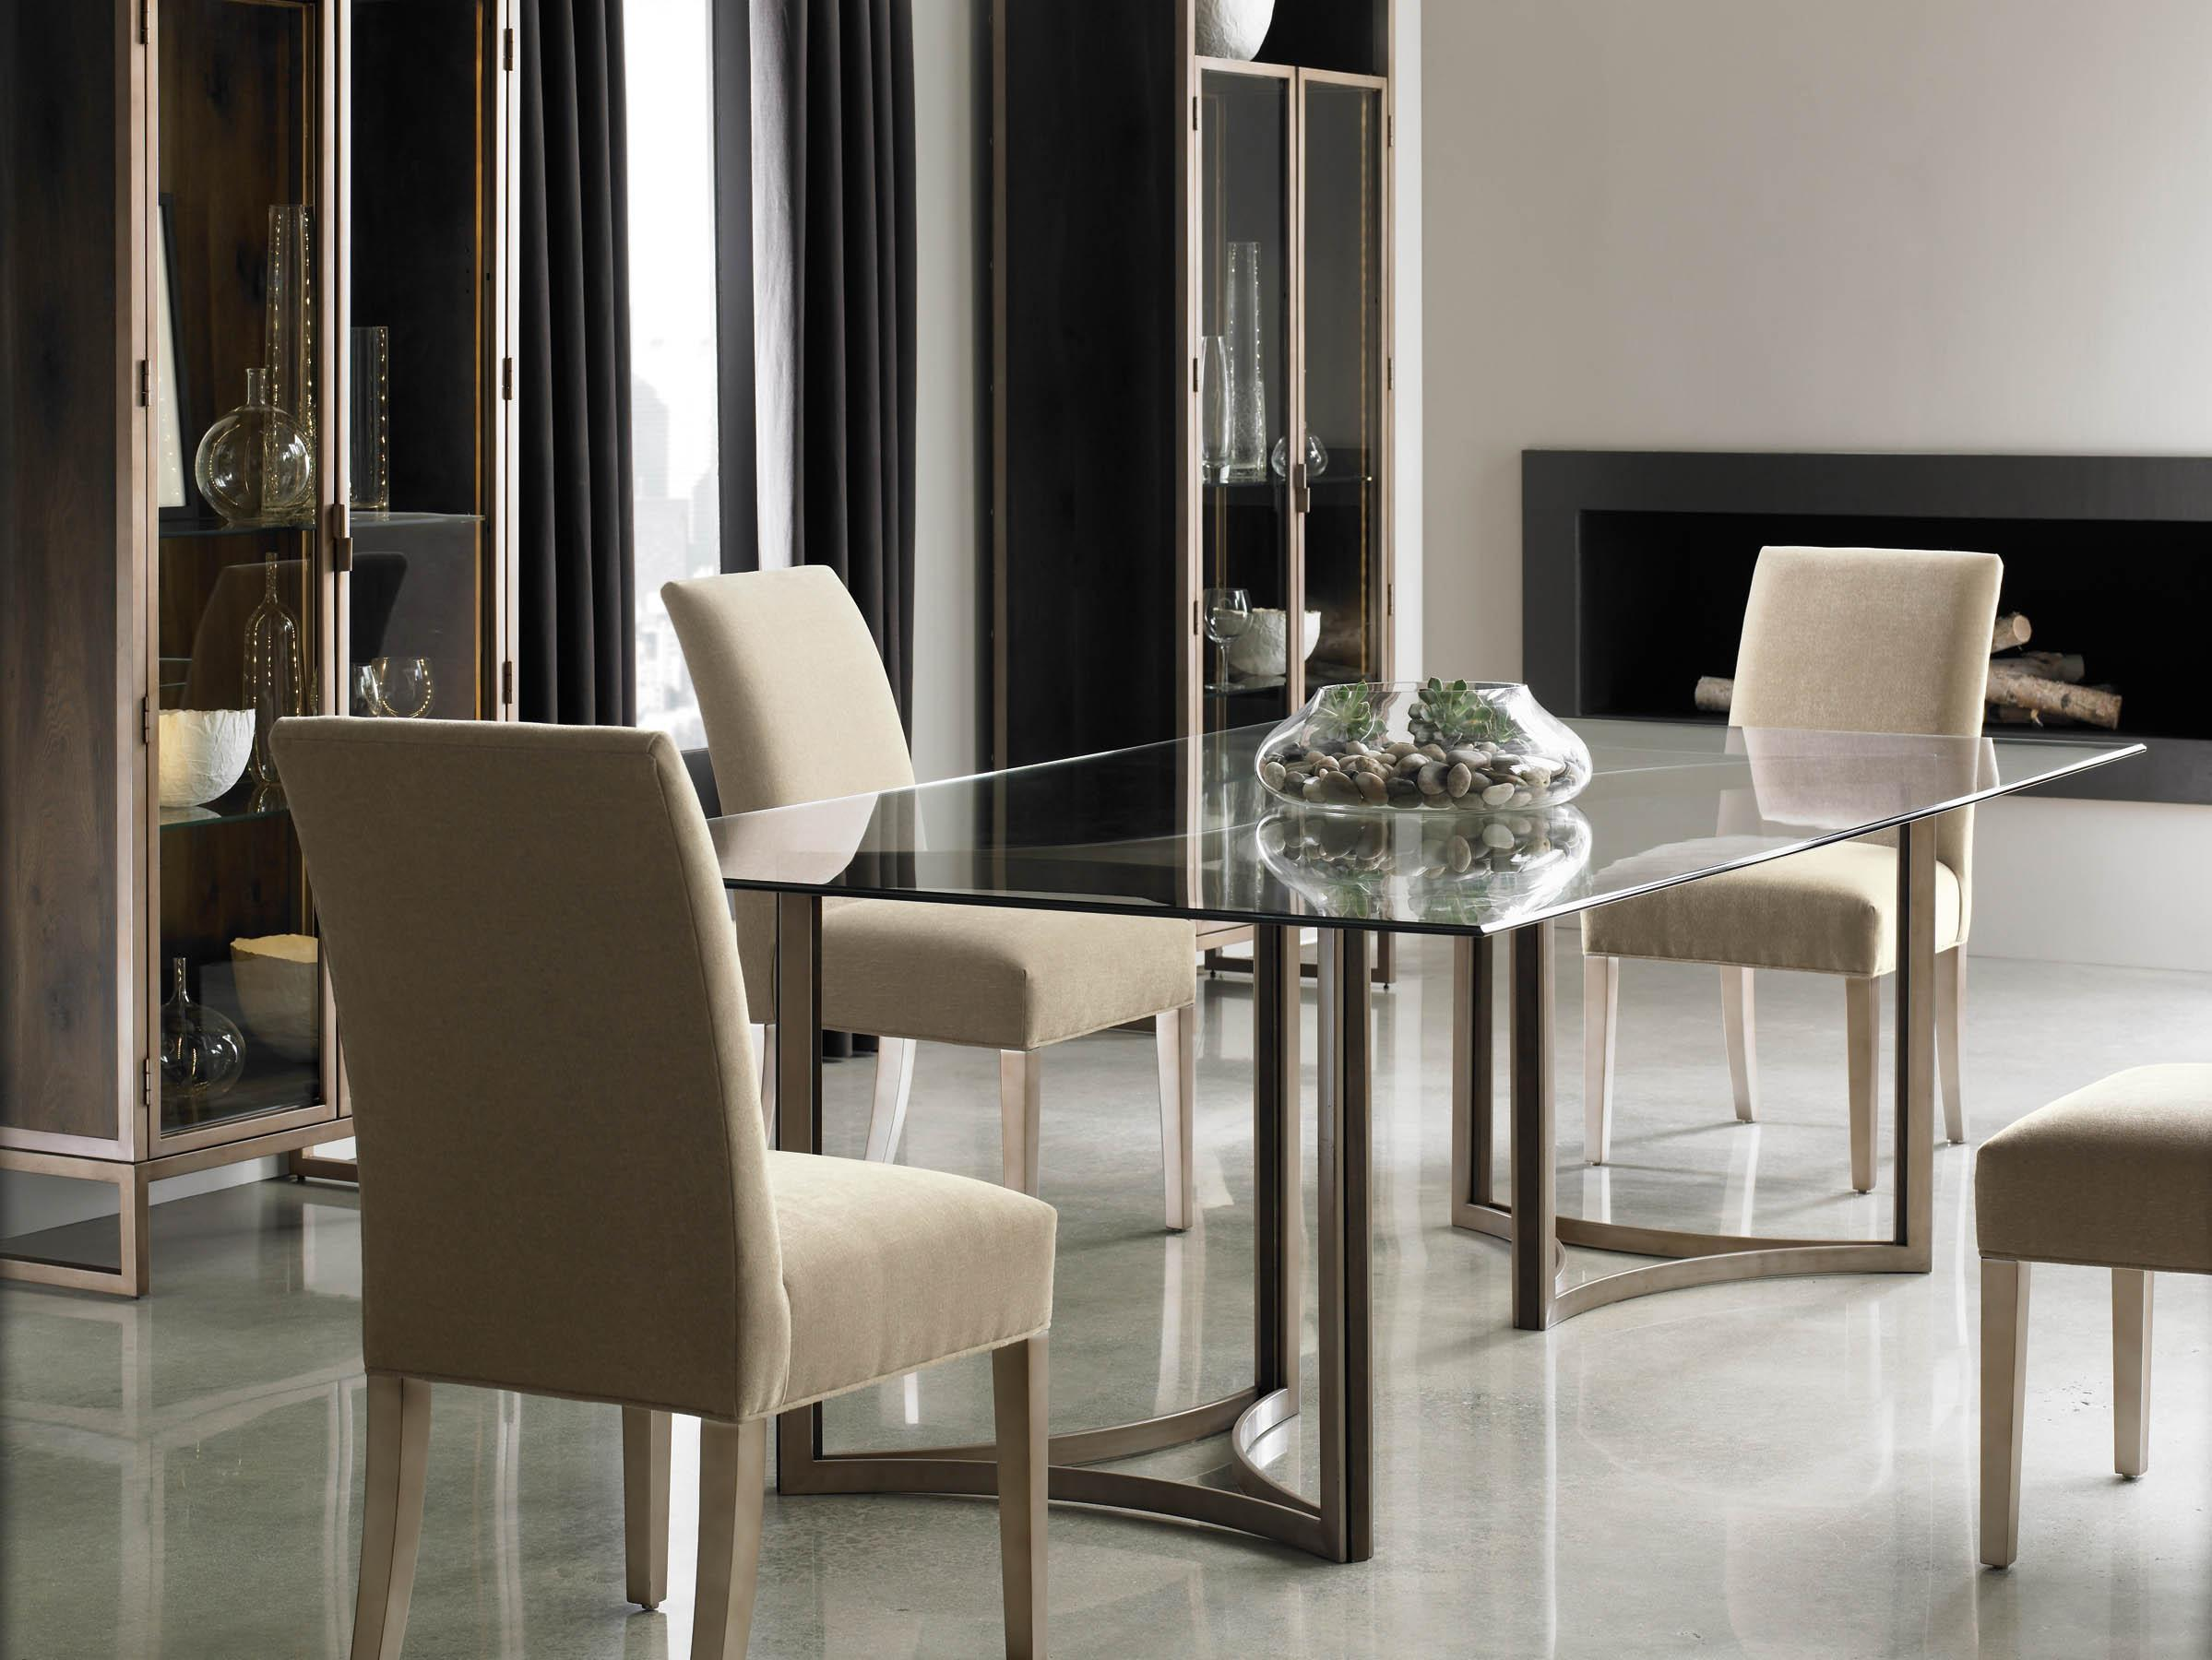 schnadig dining room set   Schnadig Modern Artisan In the Clear Dining Table and ...